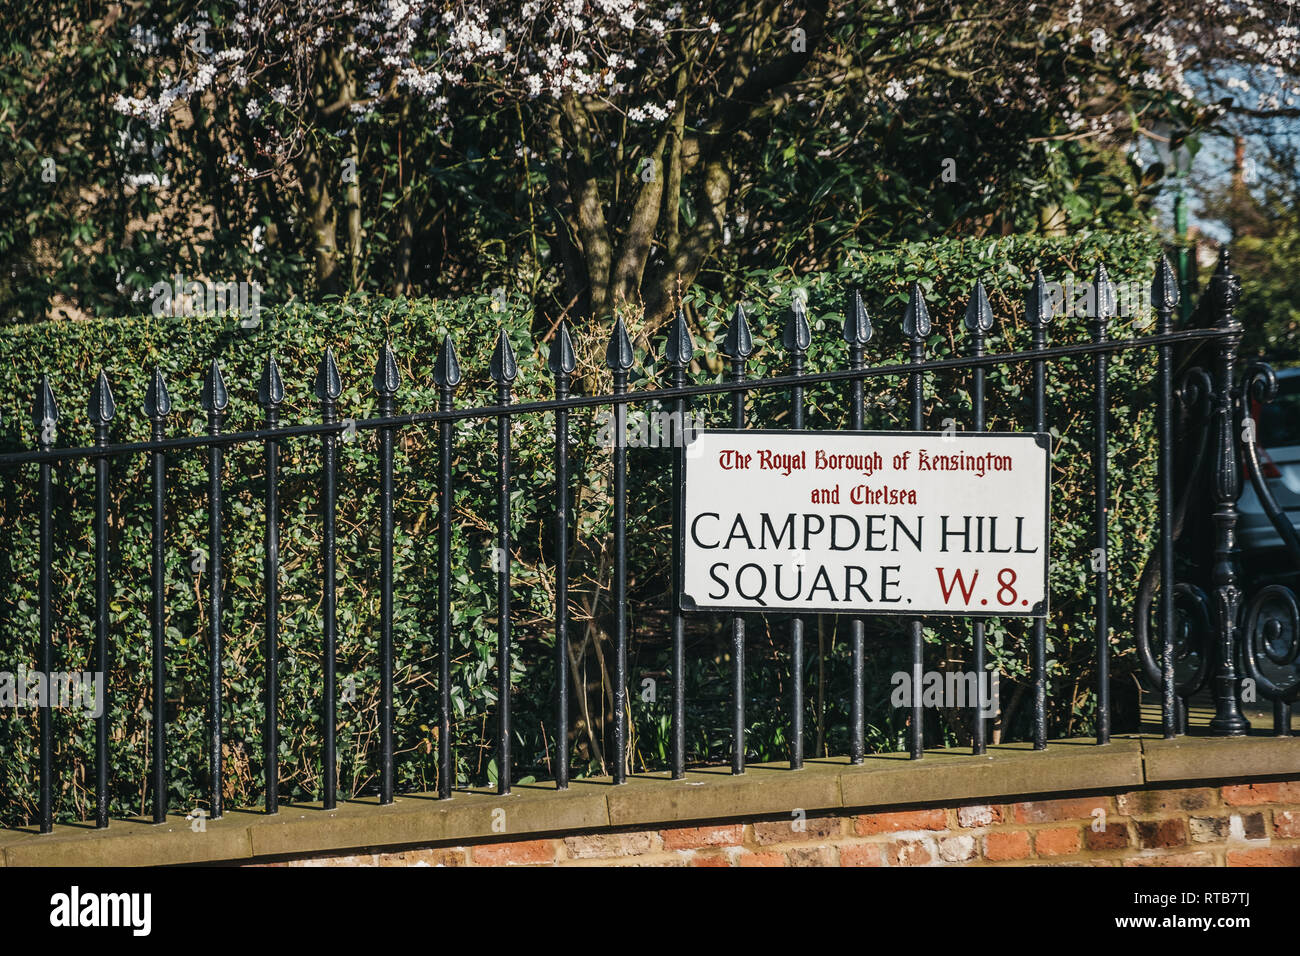 London, UK - February 23, 2019: Campden Hill Square street name sign on a black fence in The Royal Borough of Kensington and Chelsea, an affluent area Stock Photo